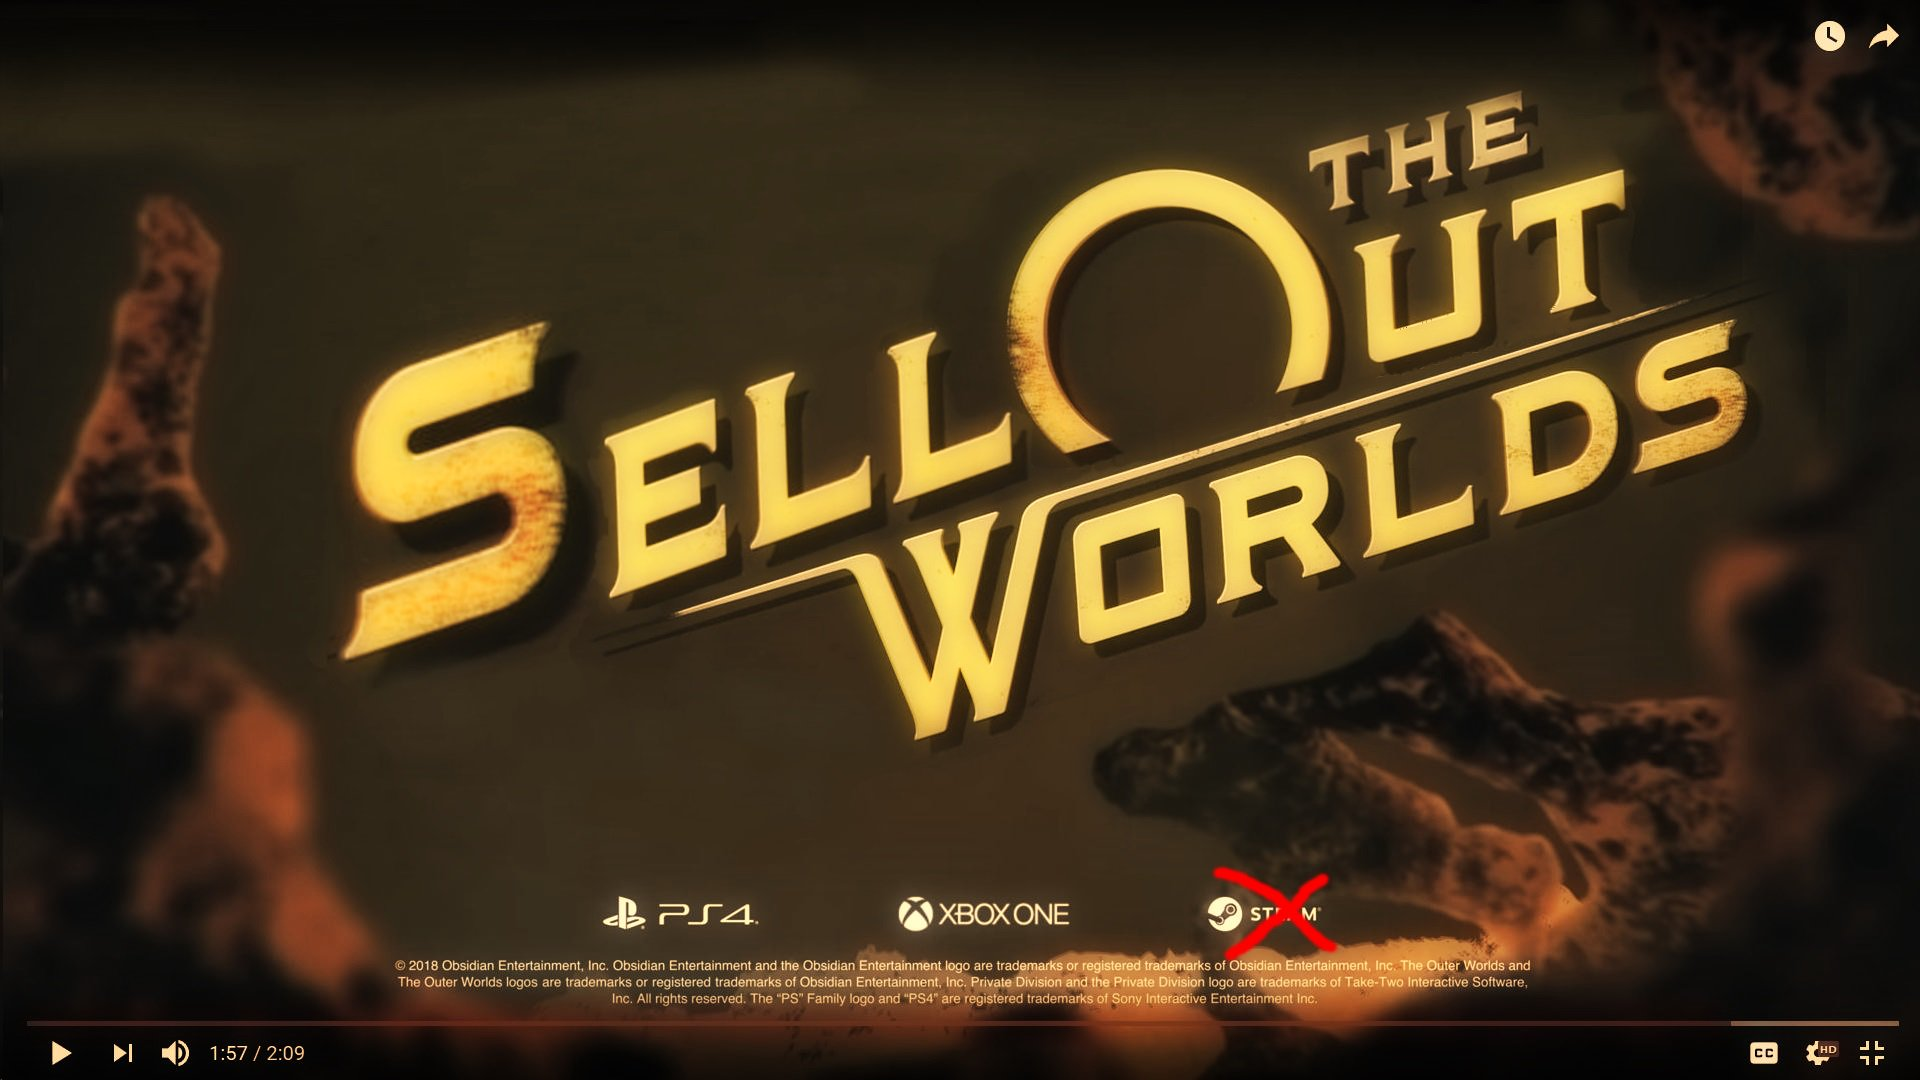 The Outer Worlds Wallpapers